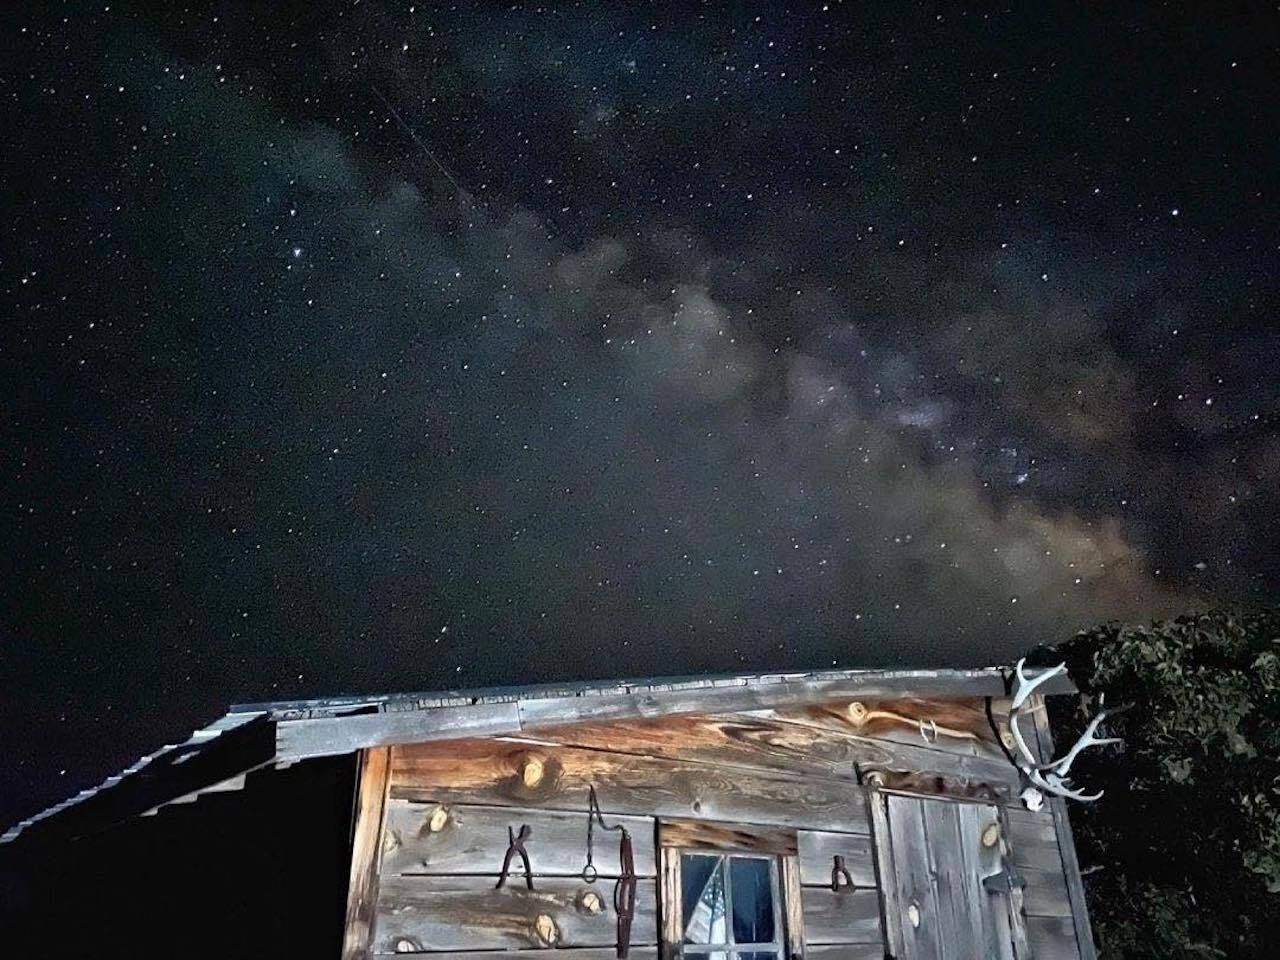 Dark sky with trace of Milky Way behind an old wooden shed